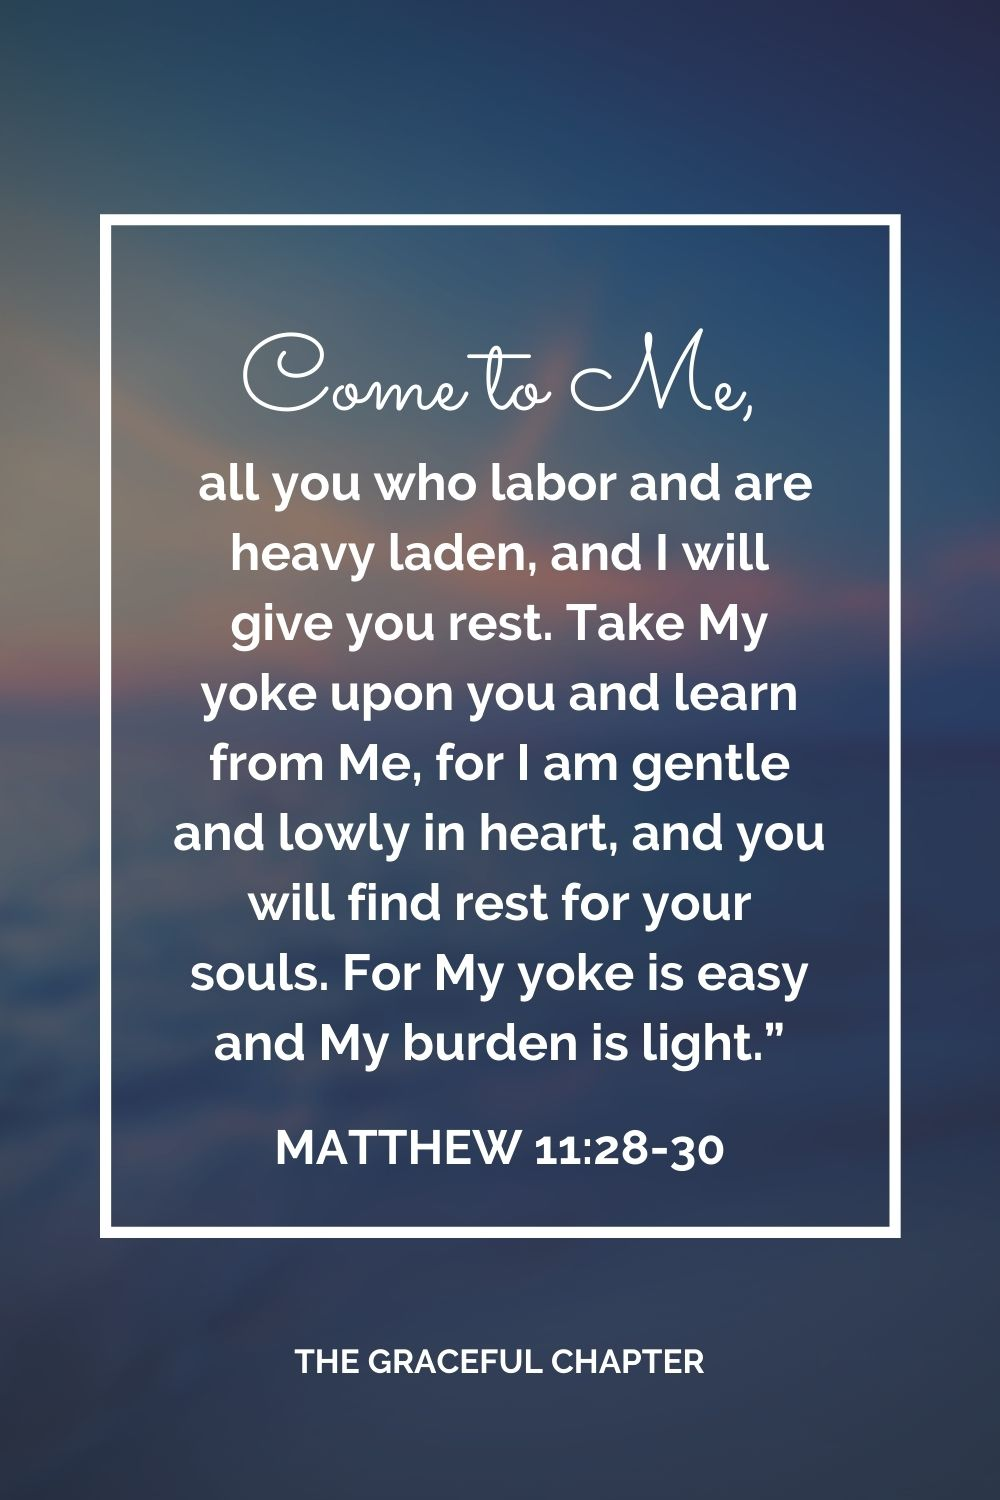 """Come to Me, all you who labor and are heavy laden, and I will give you rest. Take My yoke upon you and learn from Me, for I am gentle and lowly in heart, and you will find rest for your souls. For My yoke is easy and My burden is light."""" Matthew 11:28-30"""